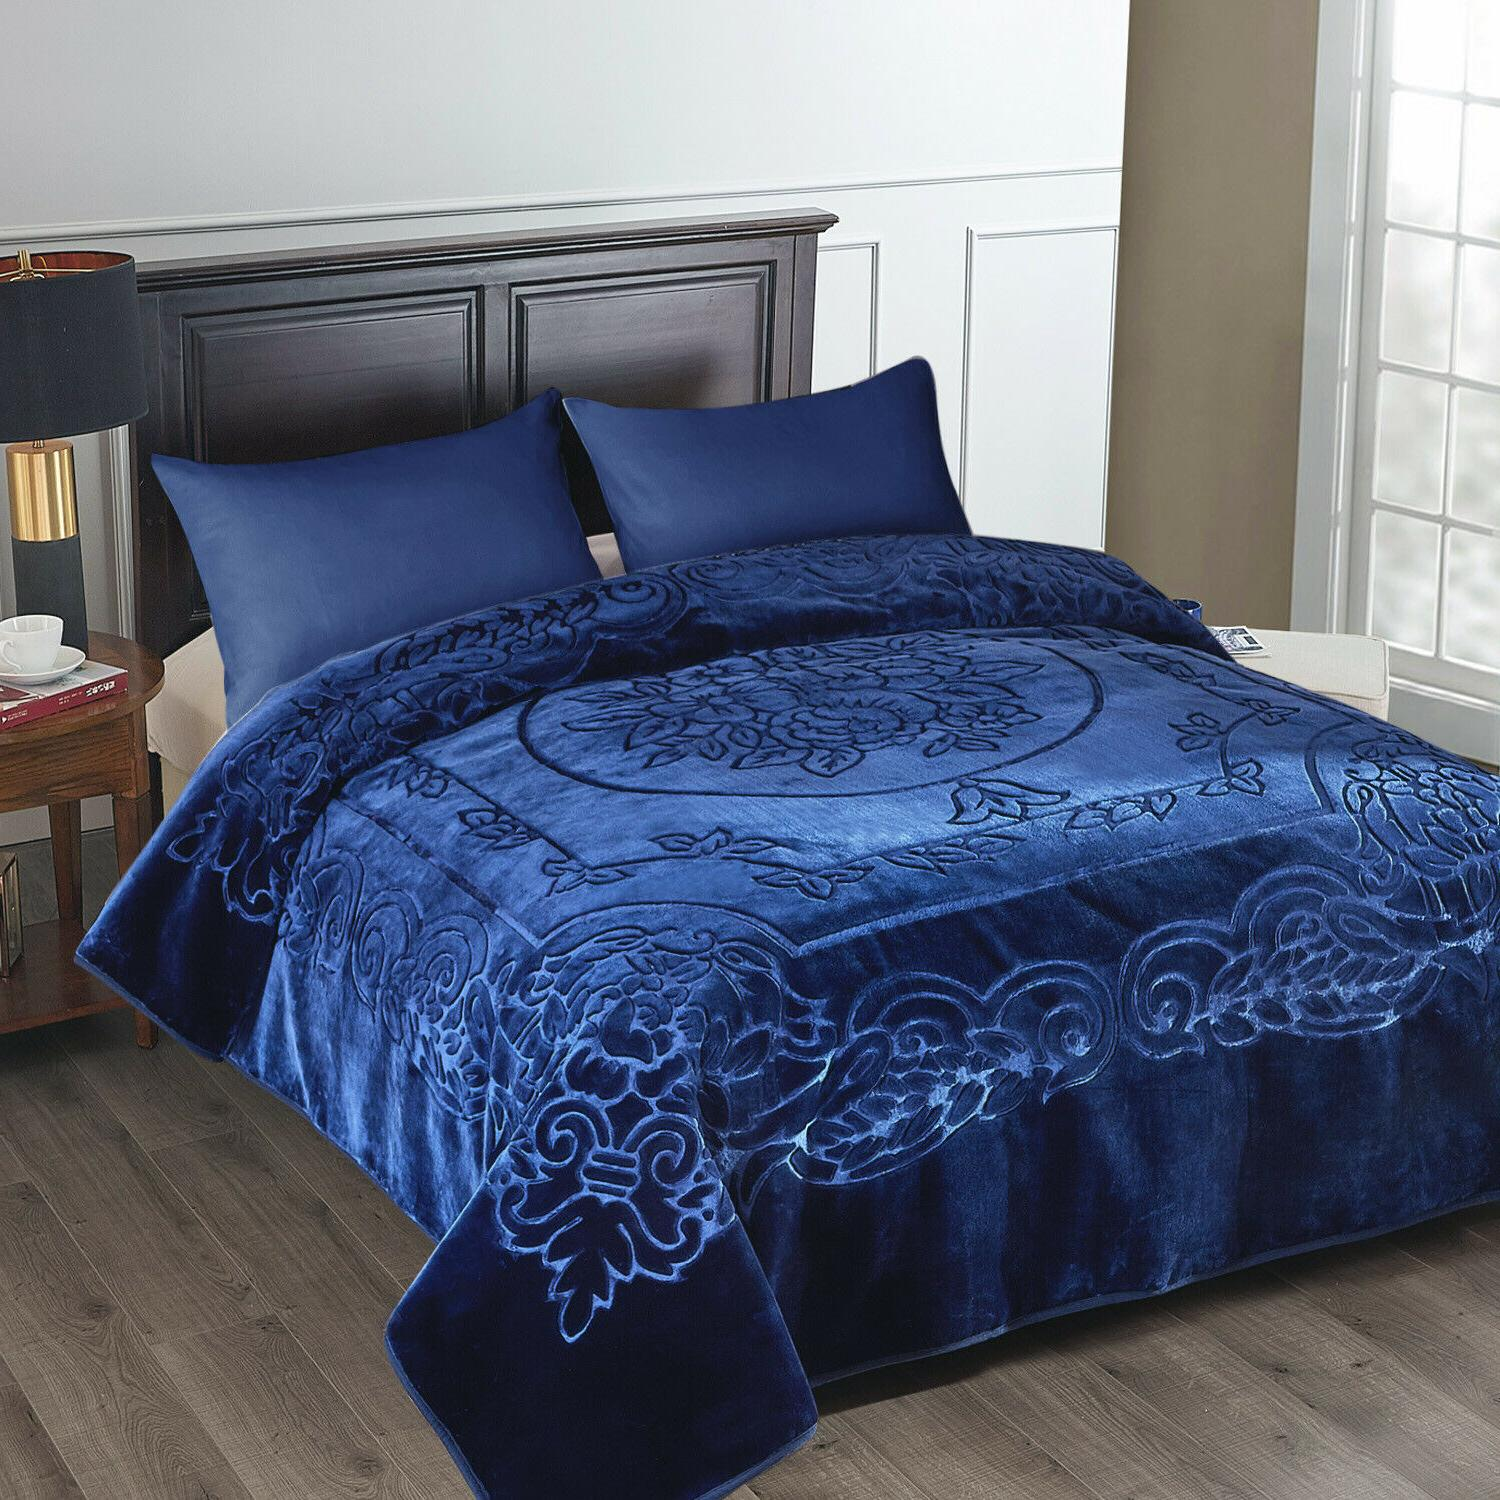 Heavy Thick Korean Blanket X 95 Inches- Size Classic Colors